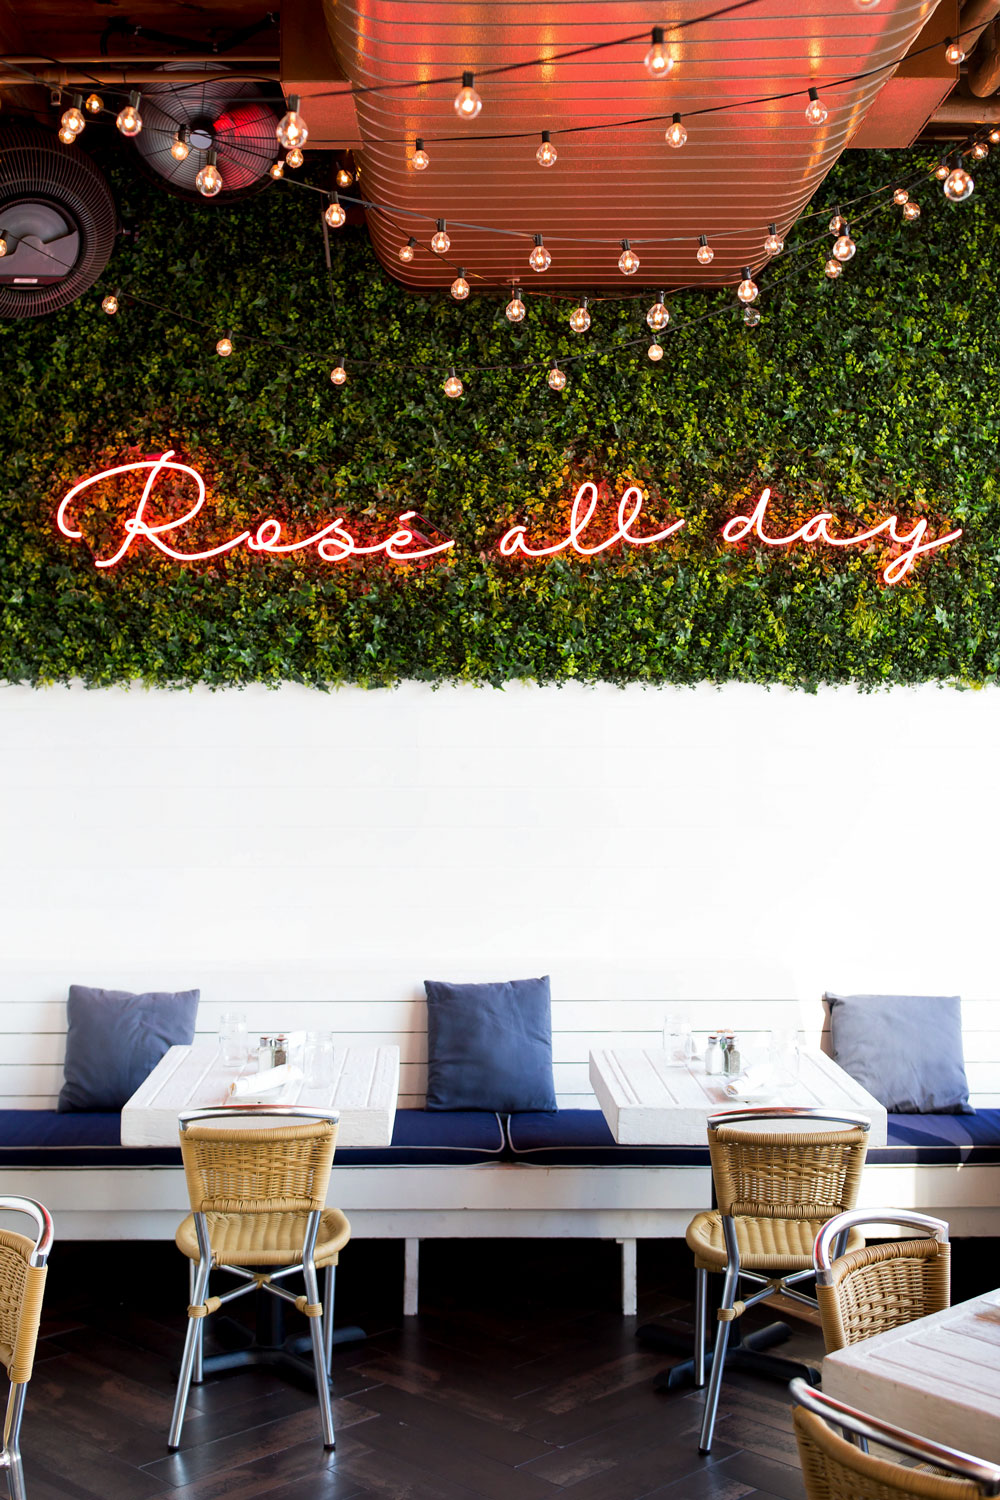 The Most Instagrammable Spots in Chicago